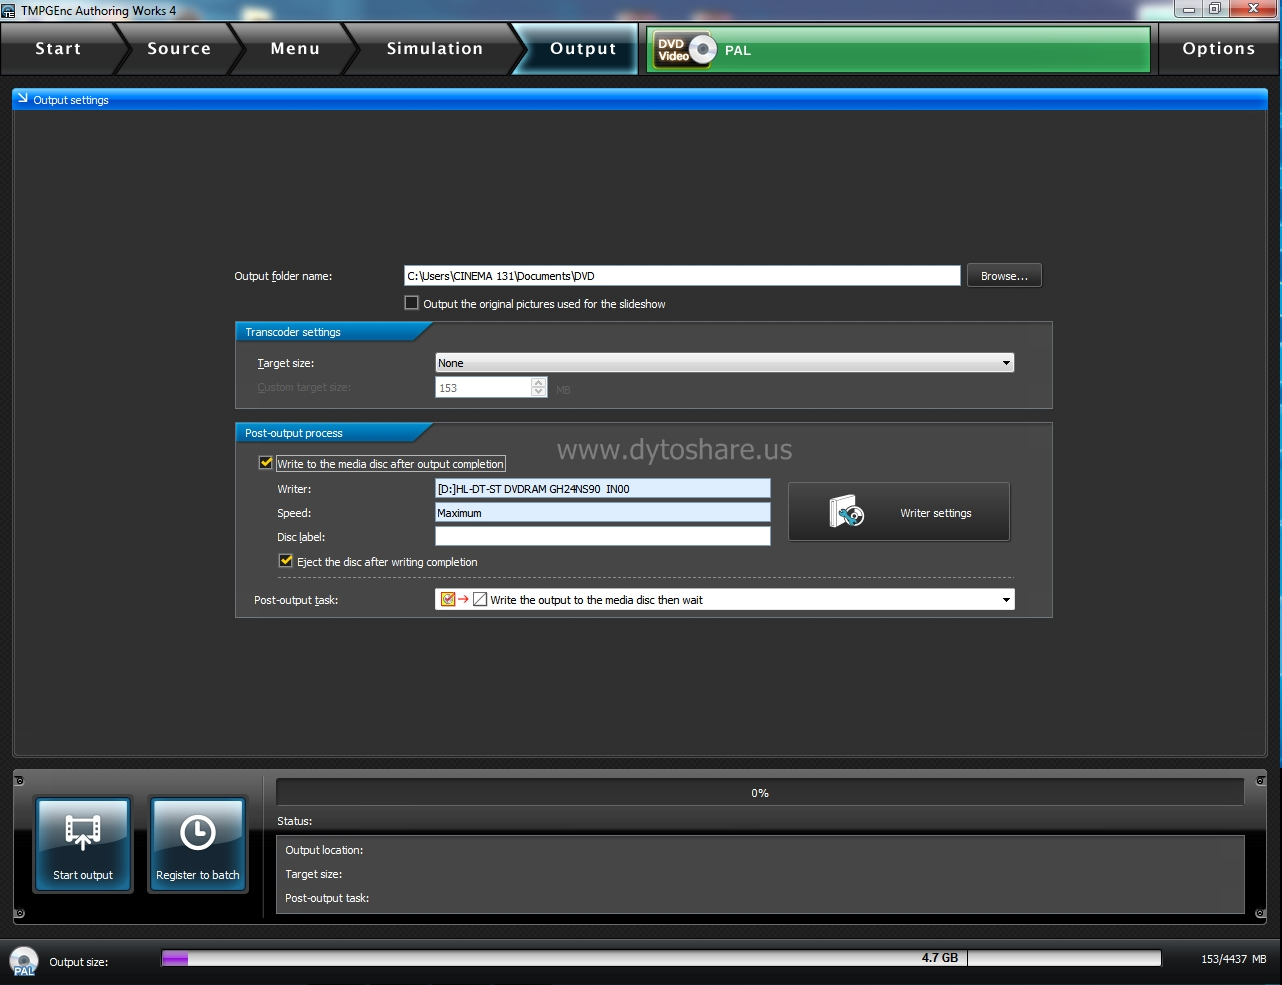 Tmpgenc Authoring Works 4